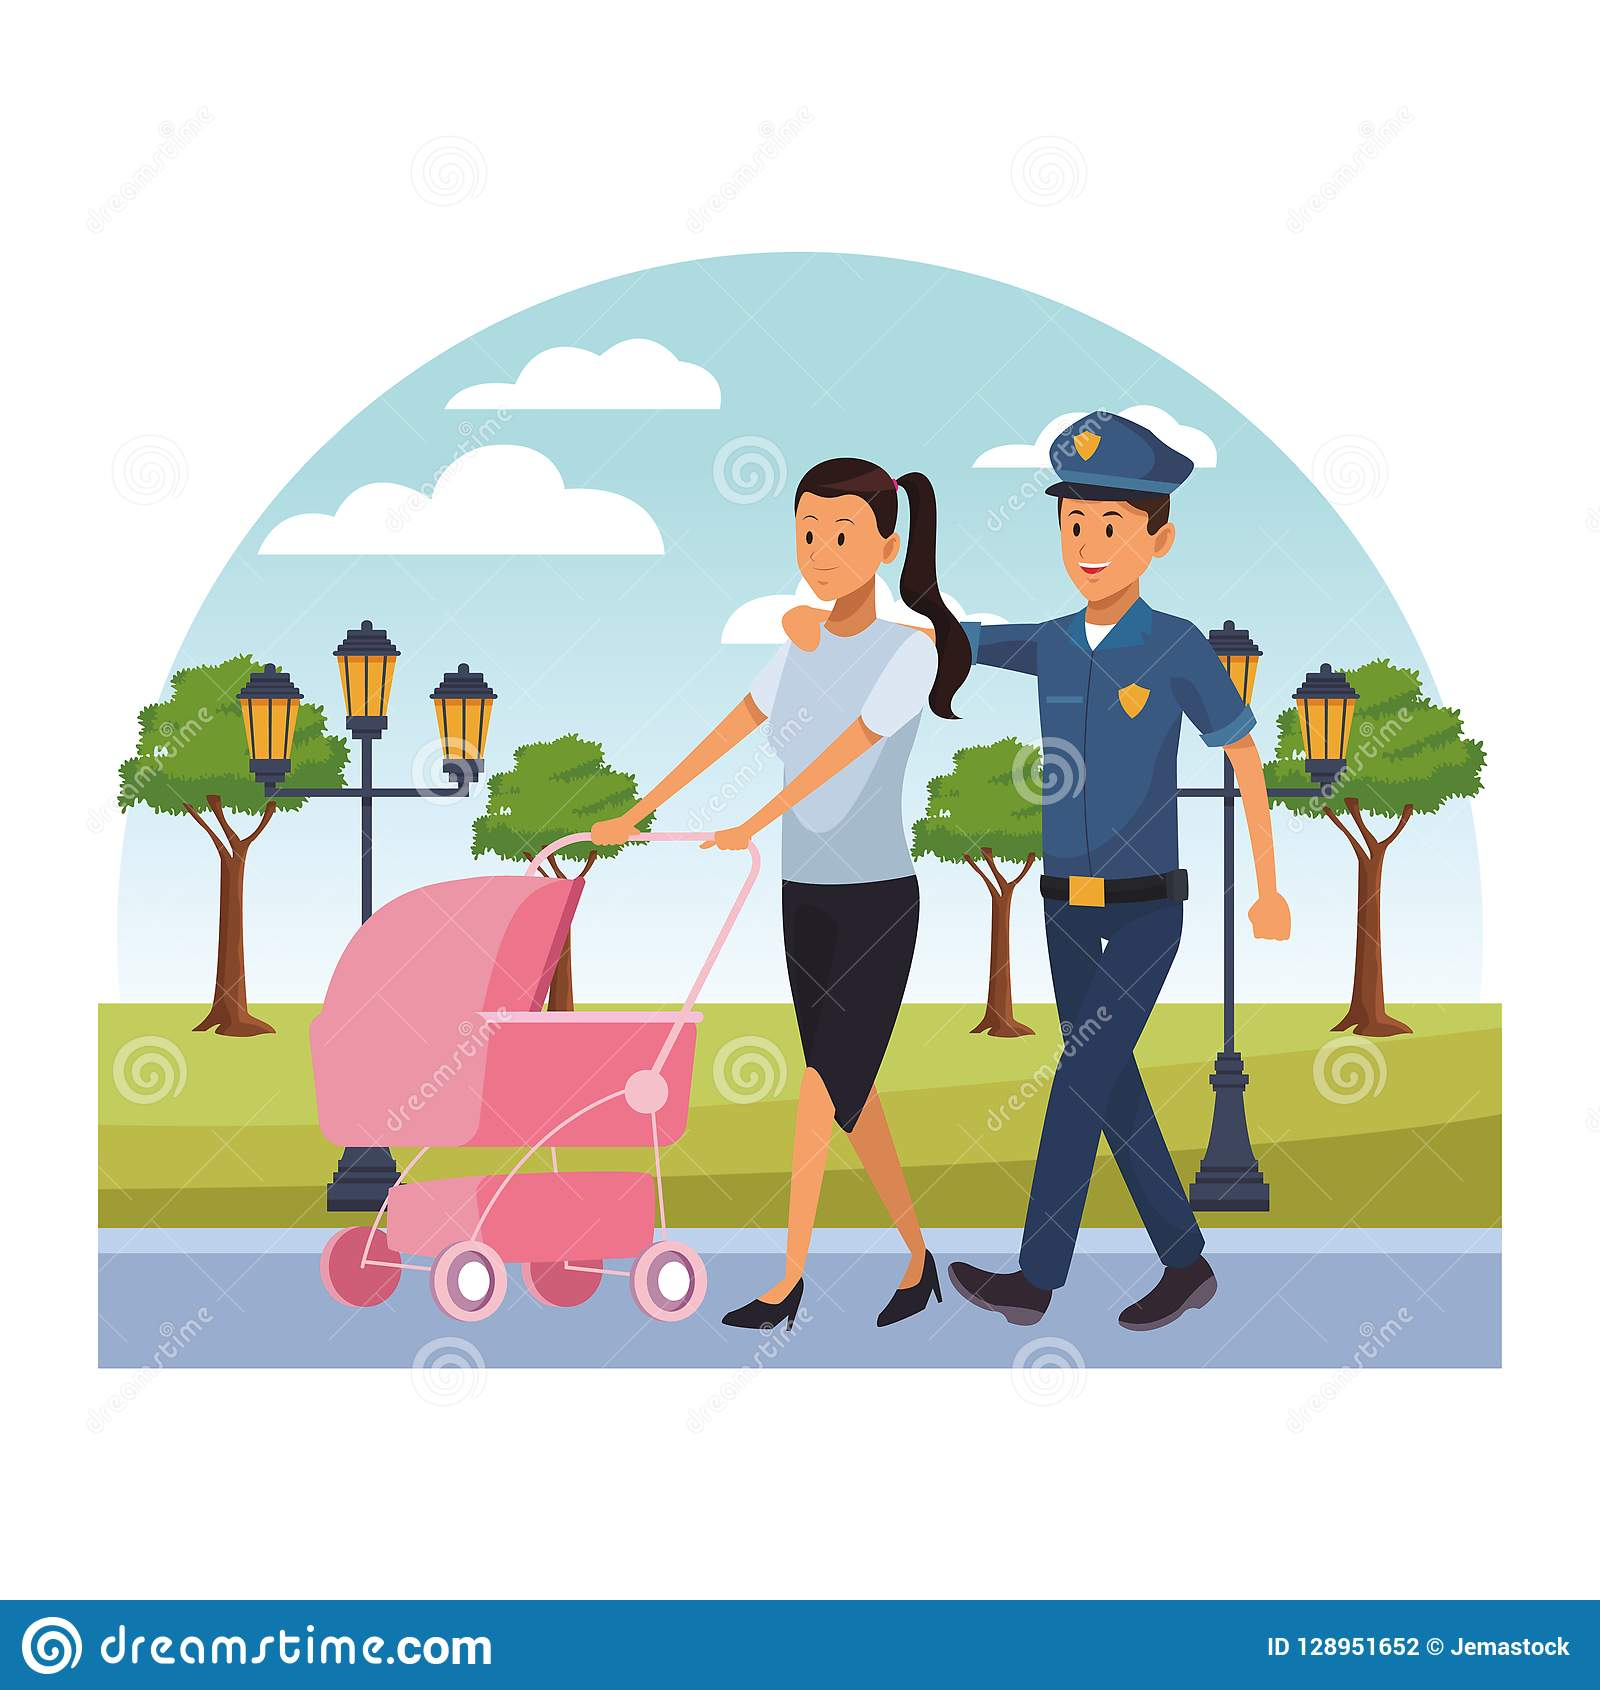 Female Police Officer Helping   Clipart Panda - Free Clipart Images